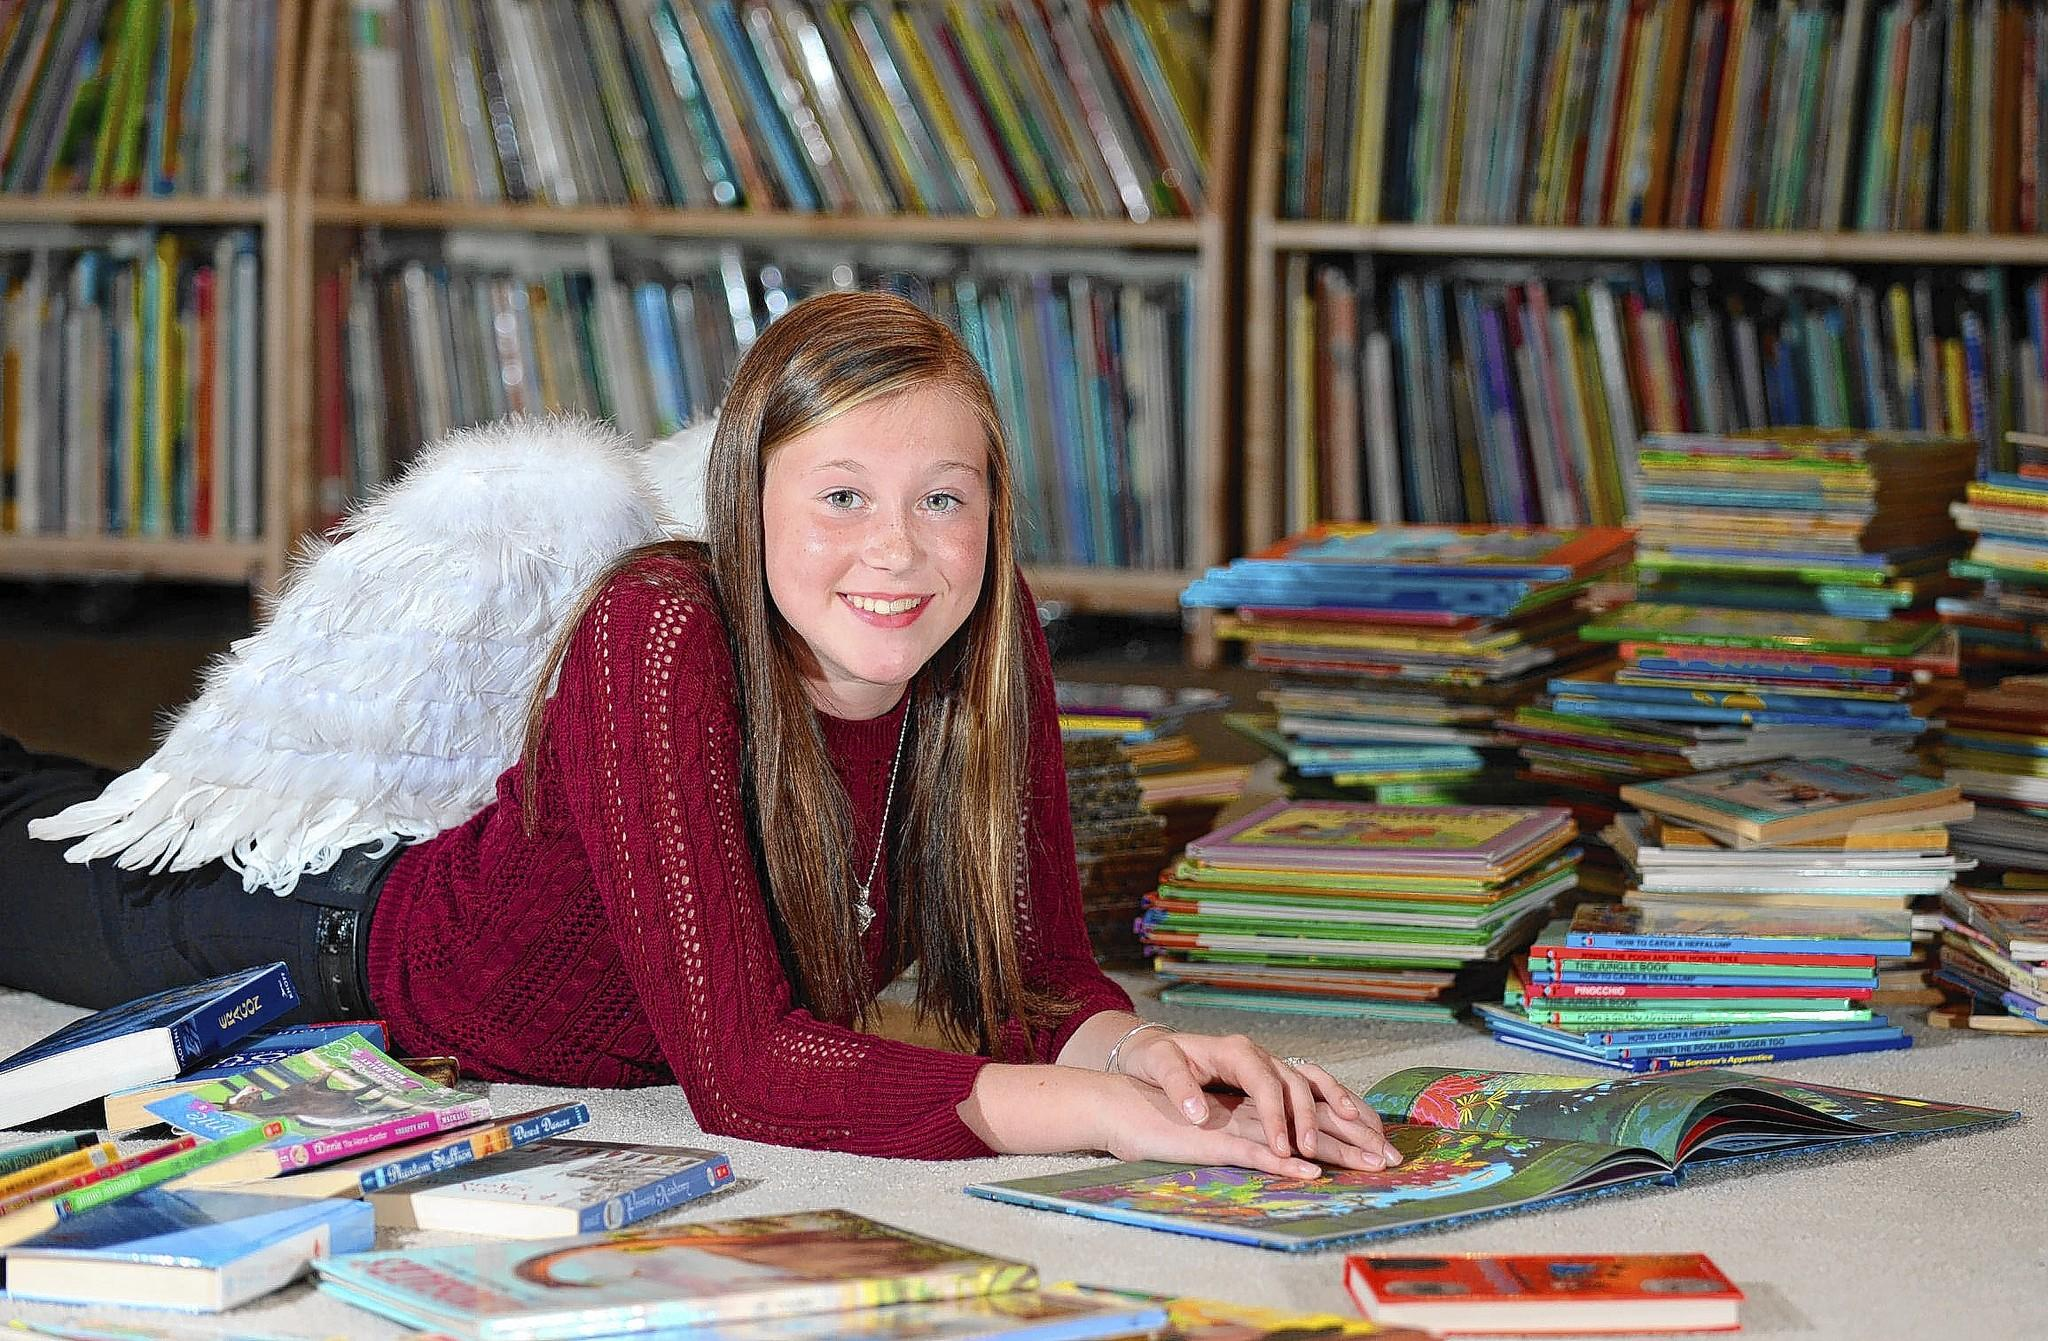 Allyse Danyi of Nazareth donated 584 books this year to the Cops 'N' Kids Children's Literacy Program.